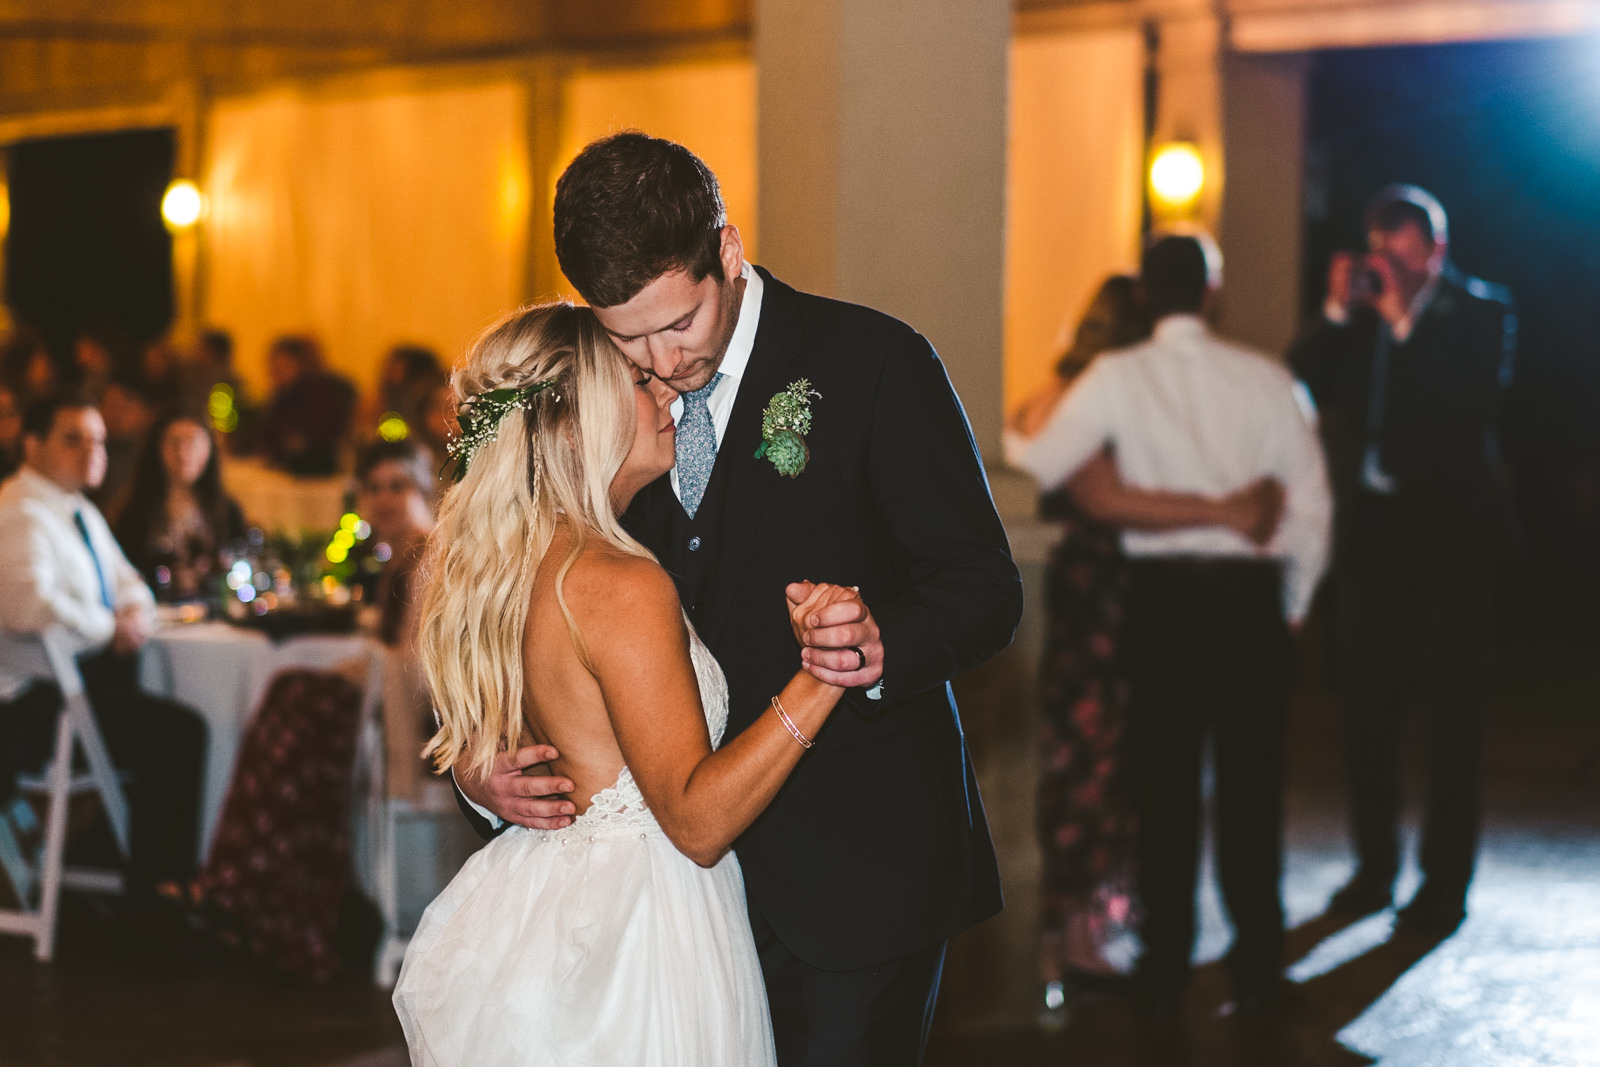 Cleveland Ohio Couple Shares First Dance with Toledo Wedding Photographers at Gervasi Vineyard for Wedding Day